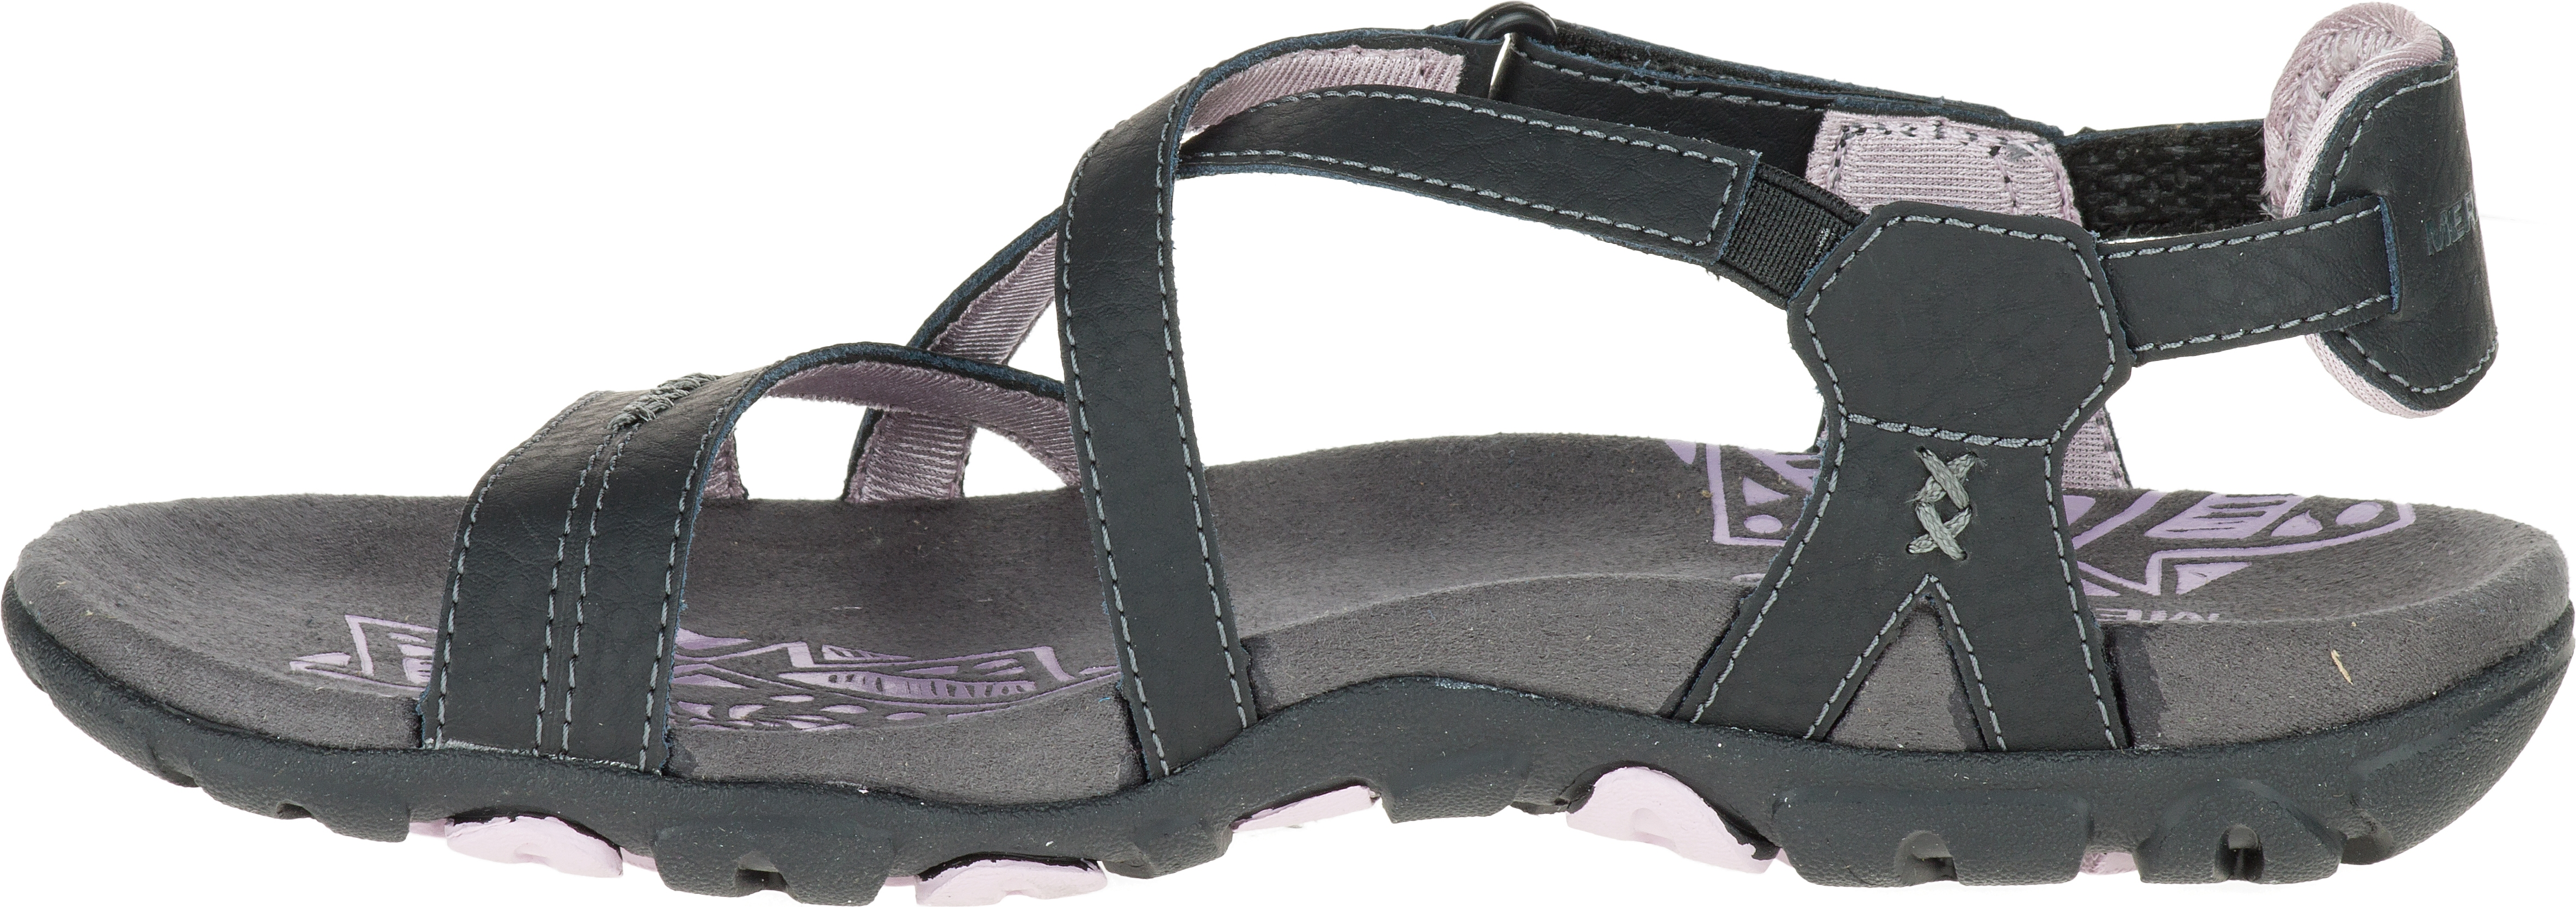 Sandspur Rose Ltr, Black/Lilac Keepsake